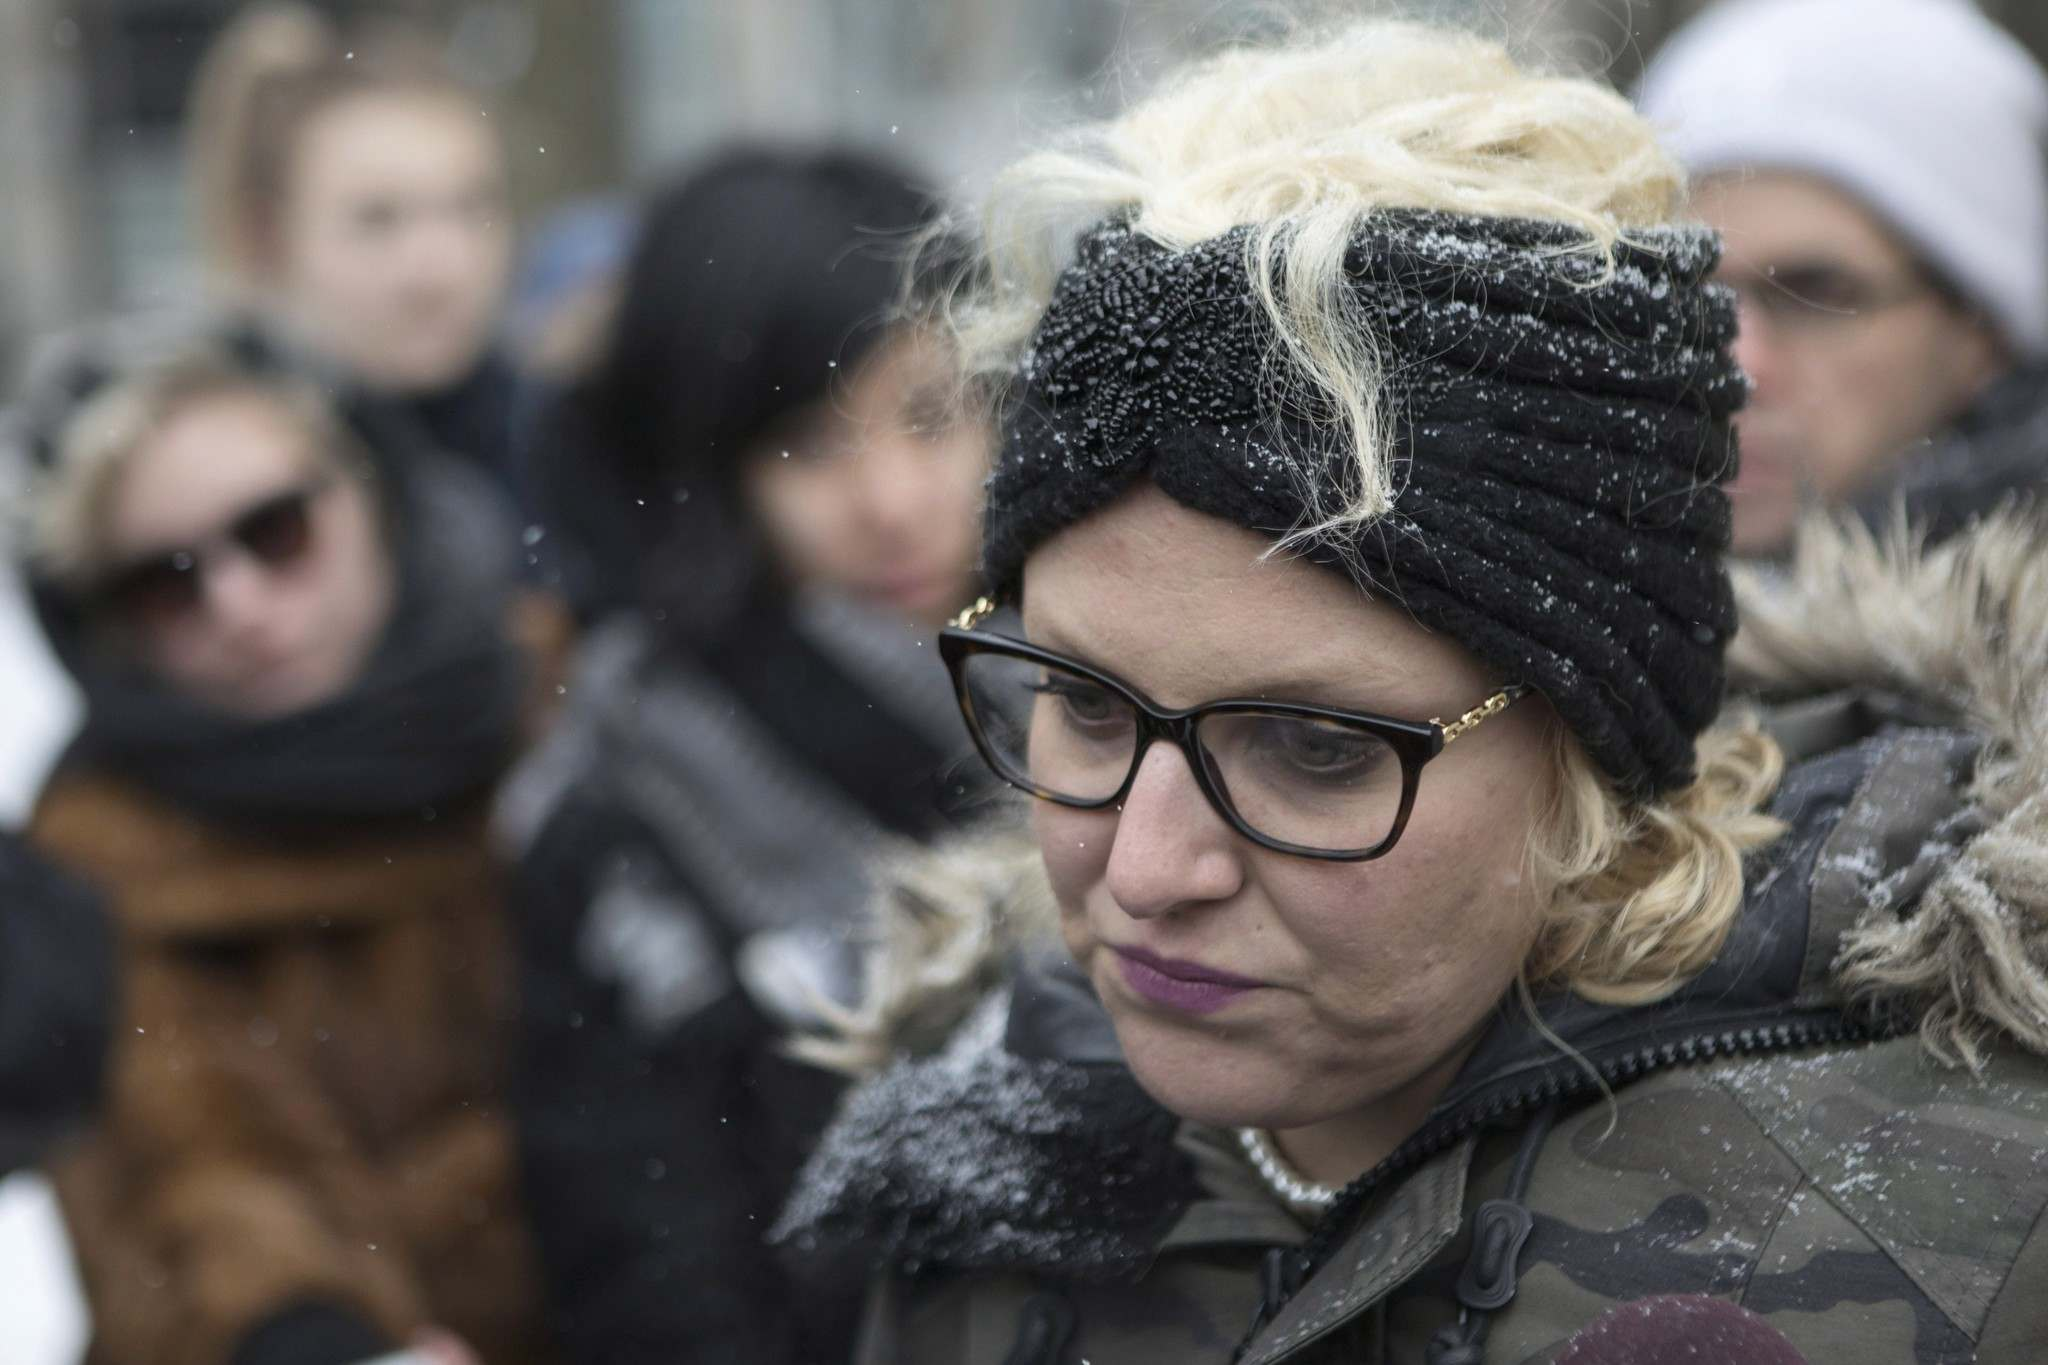 Mandi Gray stands with supporters as she talks with media outside a Toronto court on March 14, 2017, as Mustafa Ururyar appealed his sexual assault conviction. (Chris Young / The Canadian Press Files)